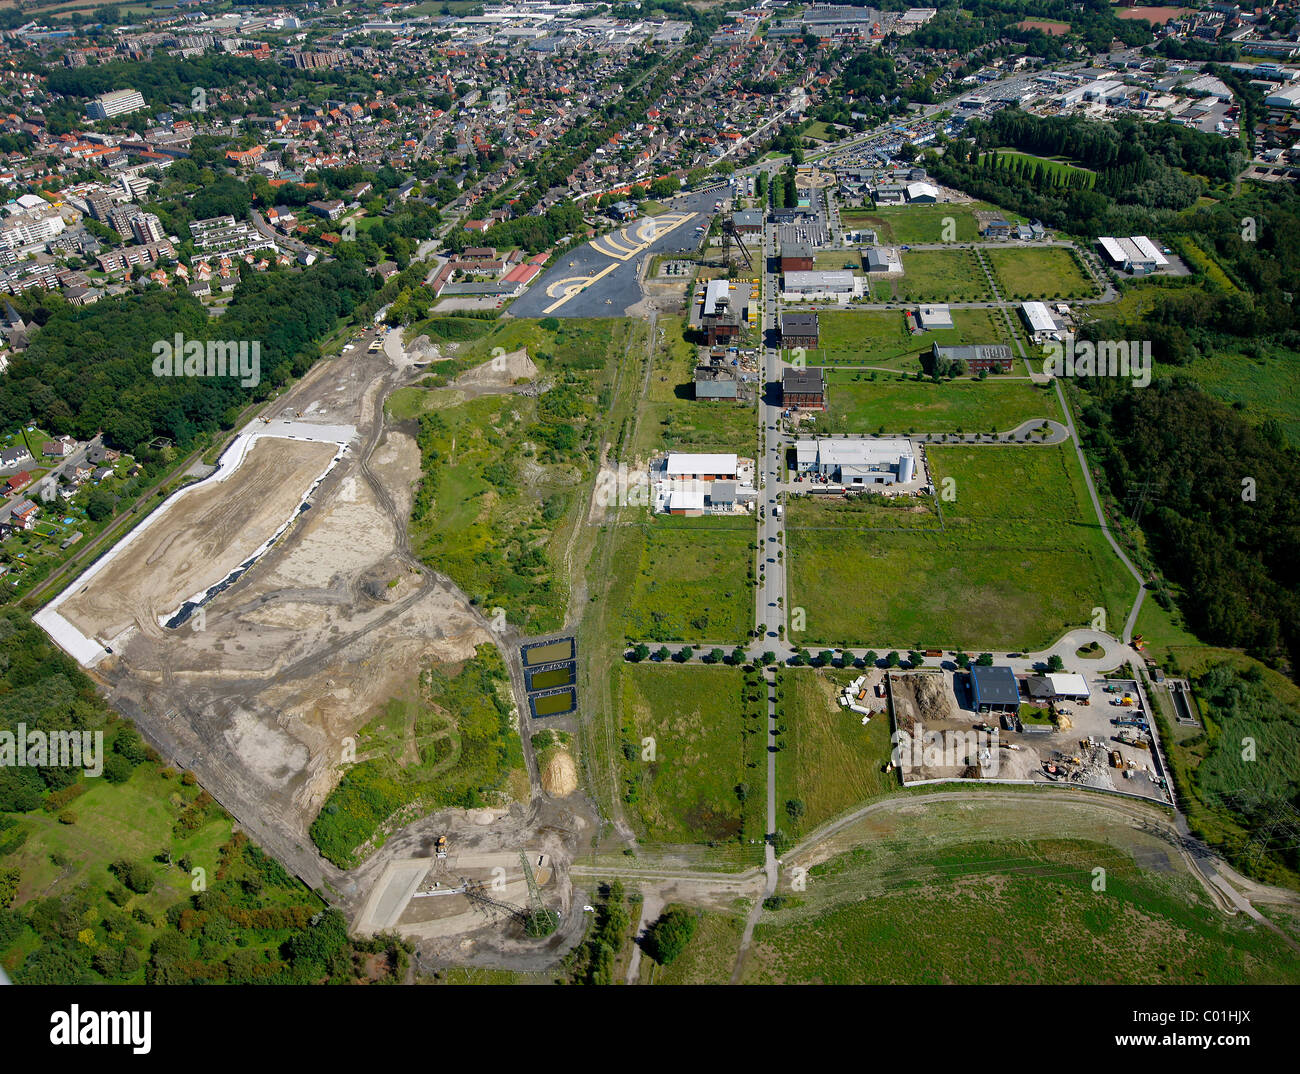 Aerial view, VW Potthoff car dealer, Radbod coal mine, former colliery site, Hamm, Ruhr area, North Rhine-Westphalia - Stock Image